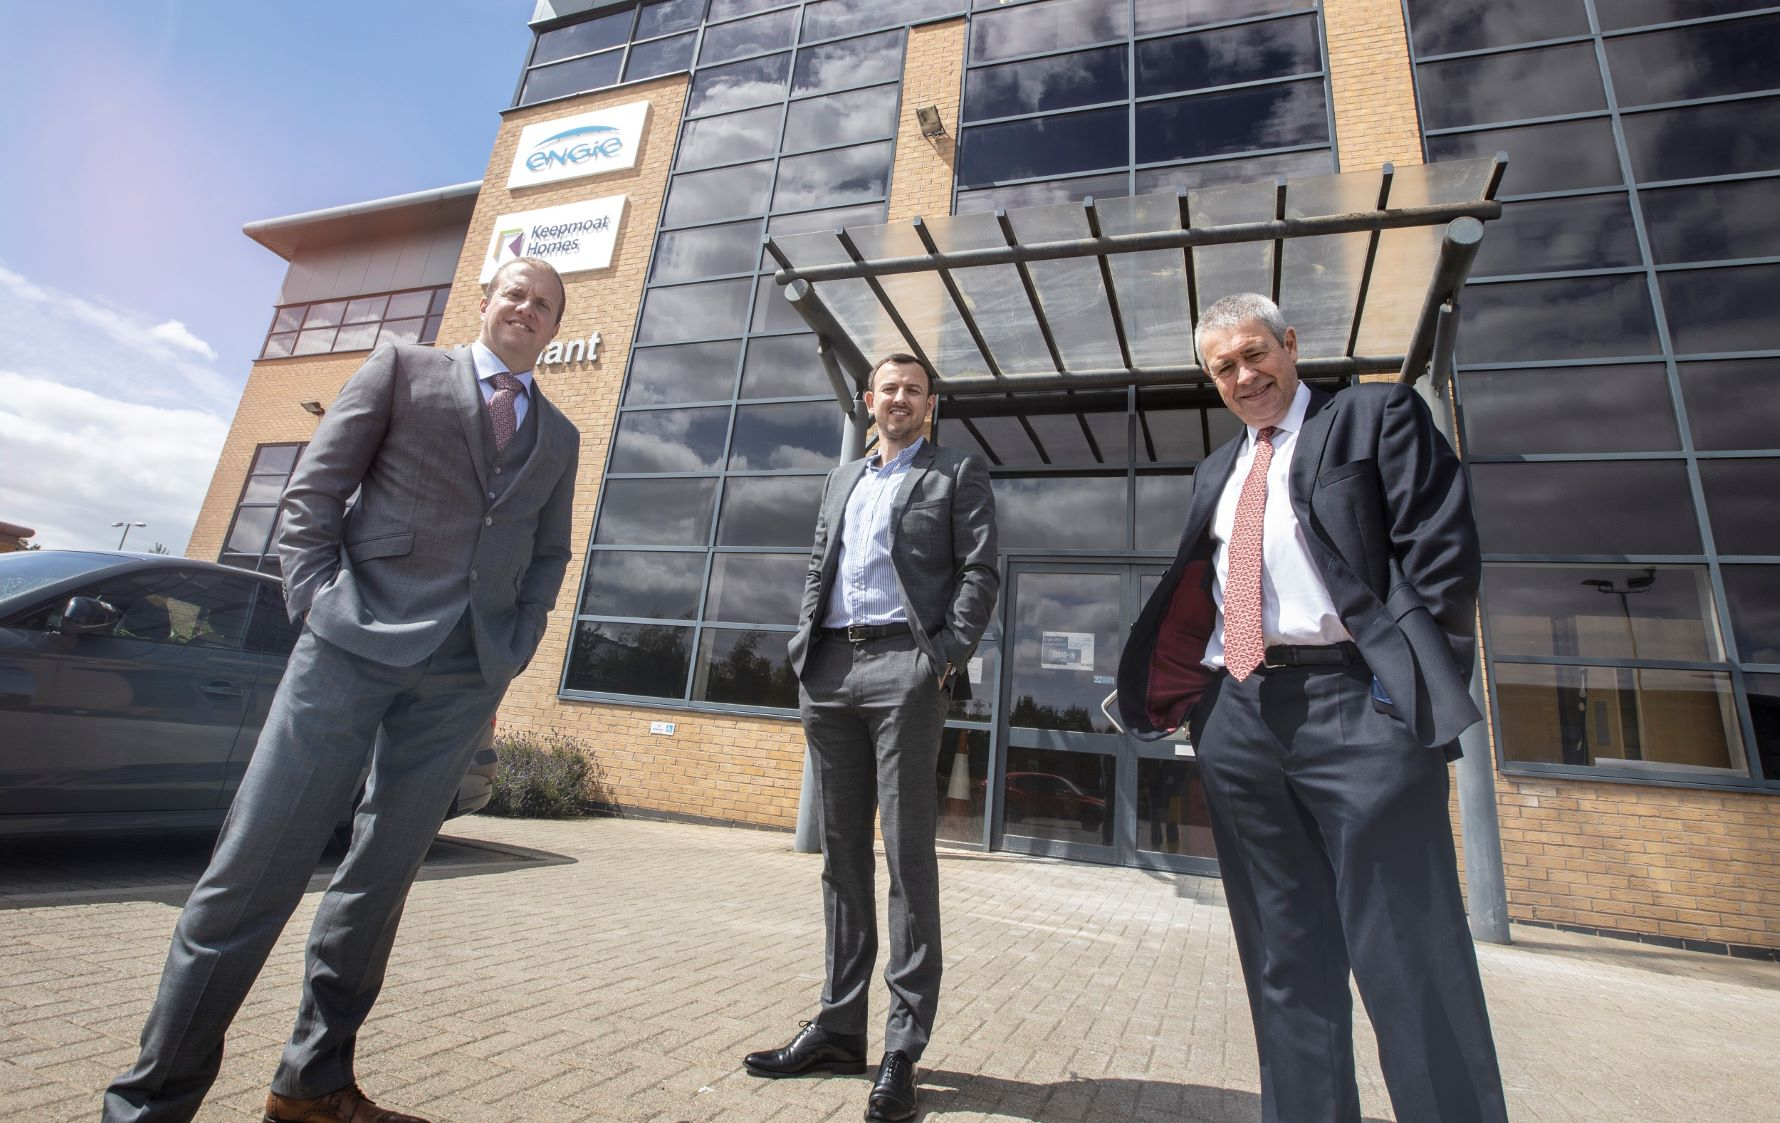 Latest letting shows business is thriving on Tyneside